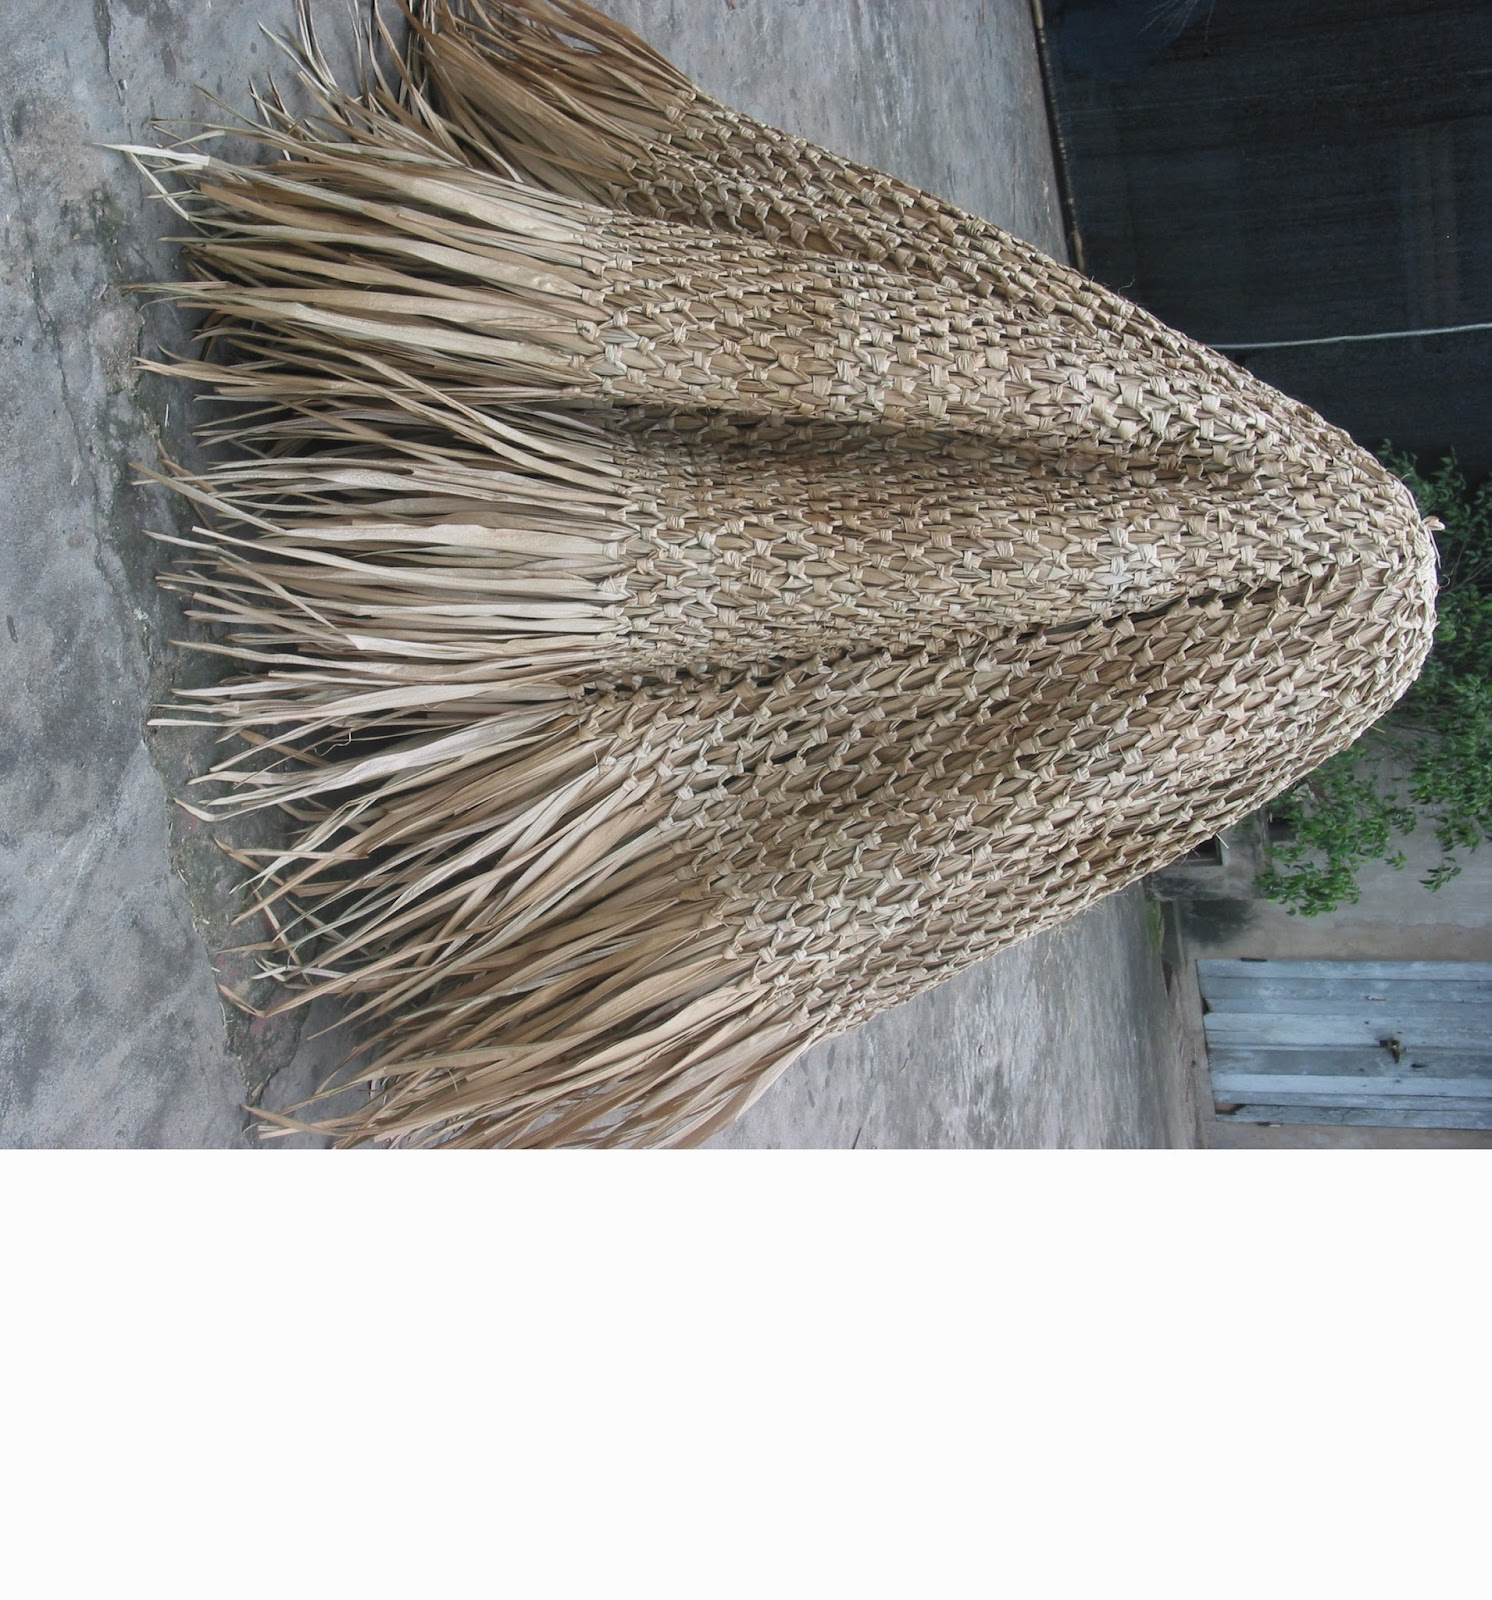 Grass Hut: Quality Bamboo And Asian Thatch: 4thatch Roof's Of Tiki